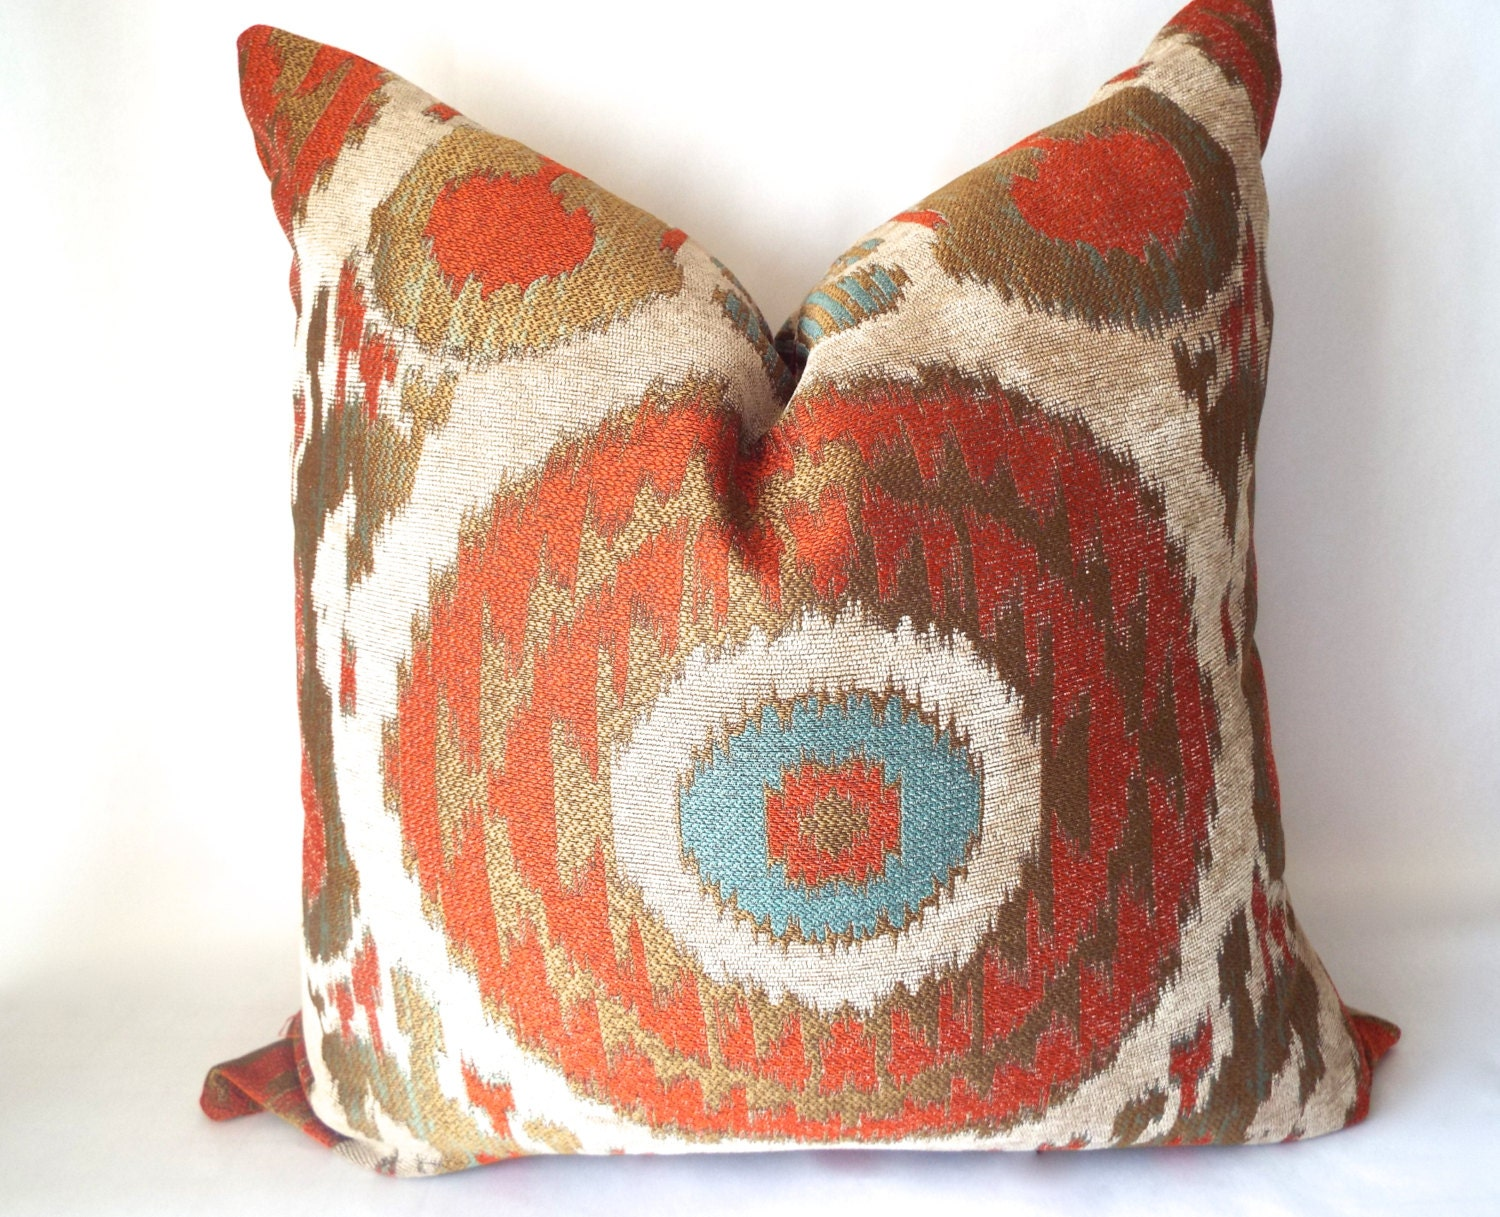 Red And Orange Decorative Pillows : Red Throw Pillow Orange Pillow Cover Decorative Pillows Red